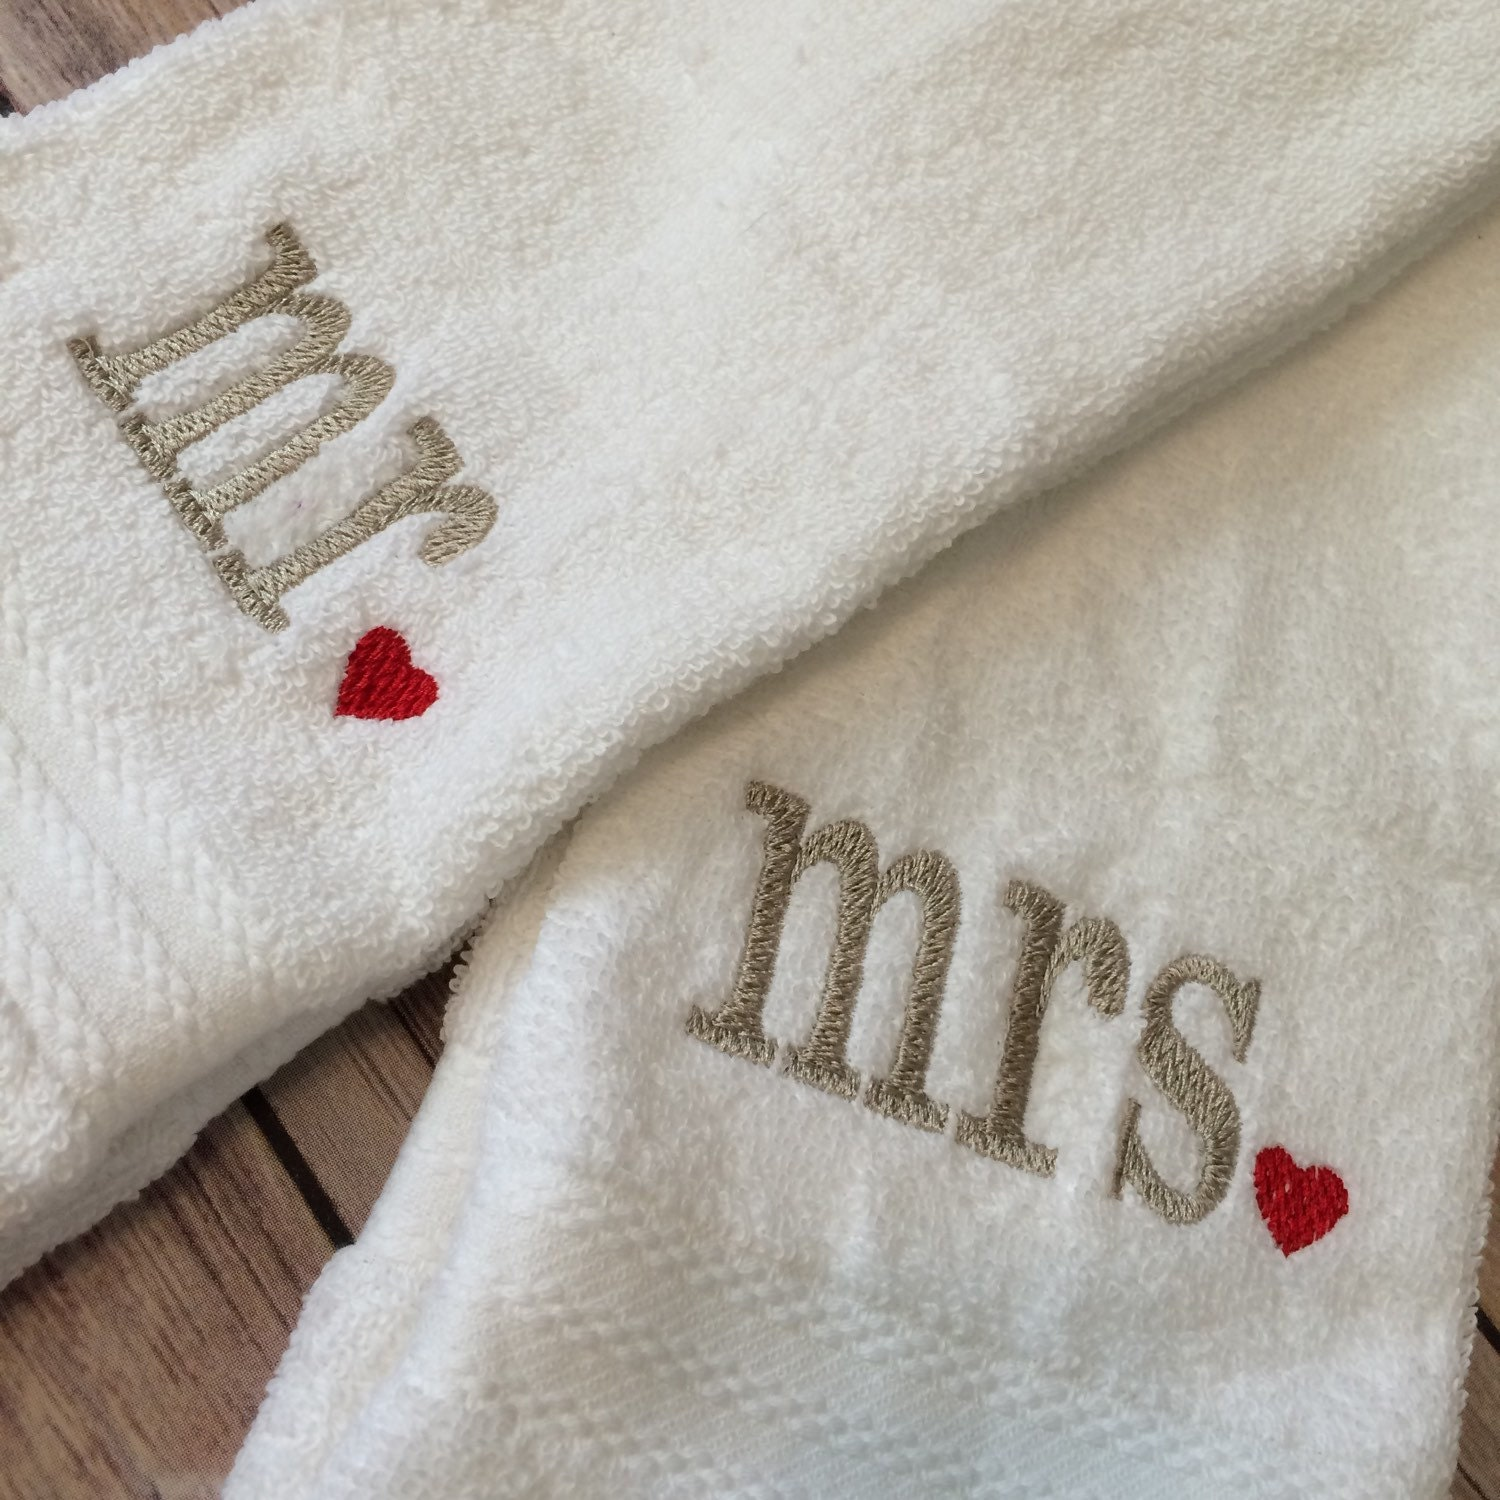 Mr. And Mrs. Hand Towels Embroidered Towels Personalized